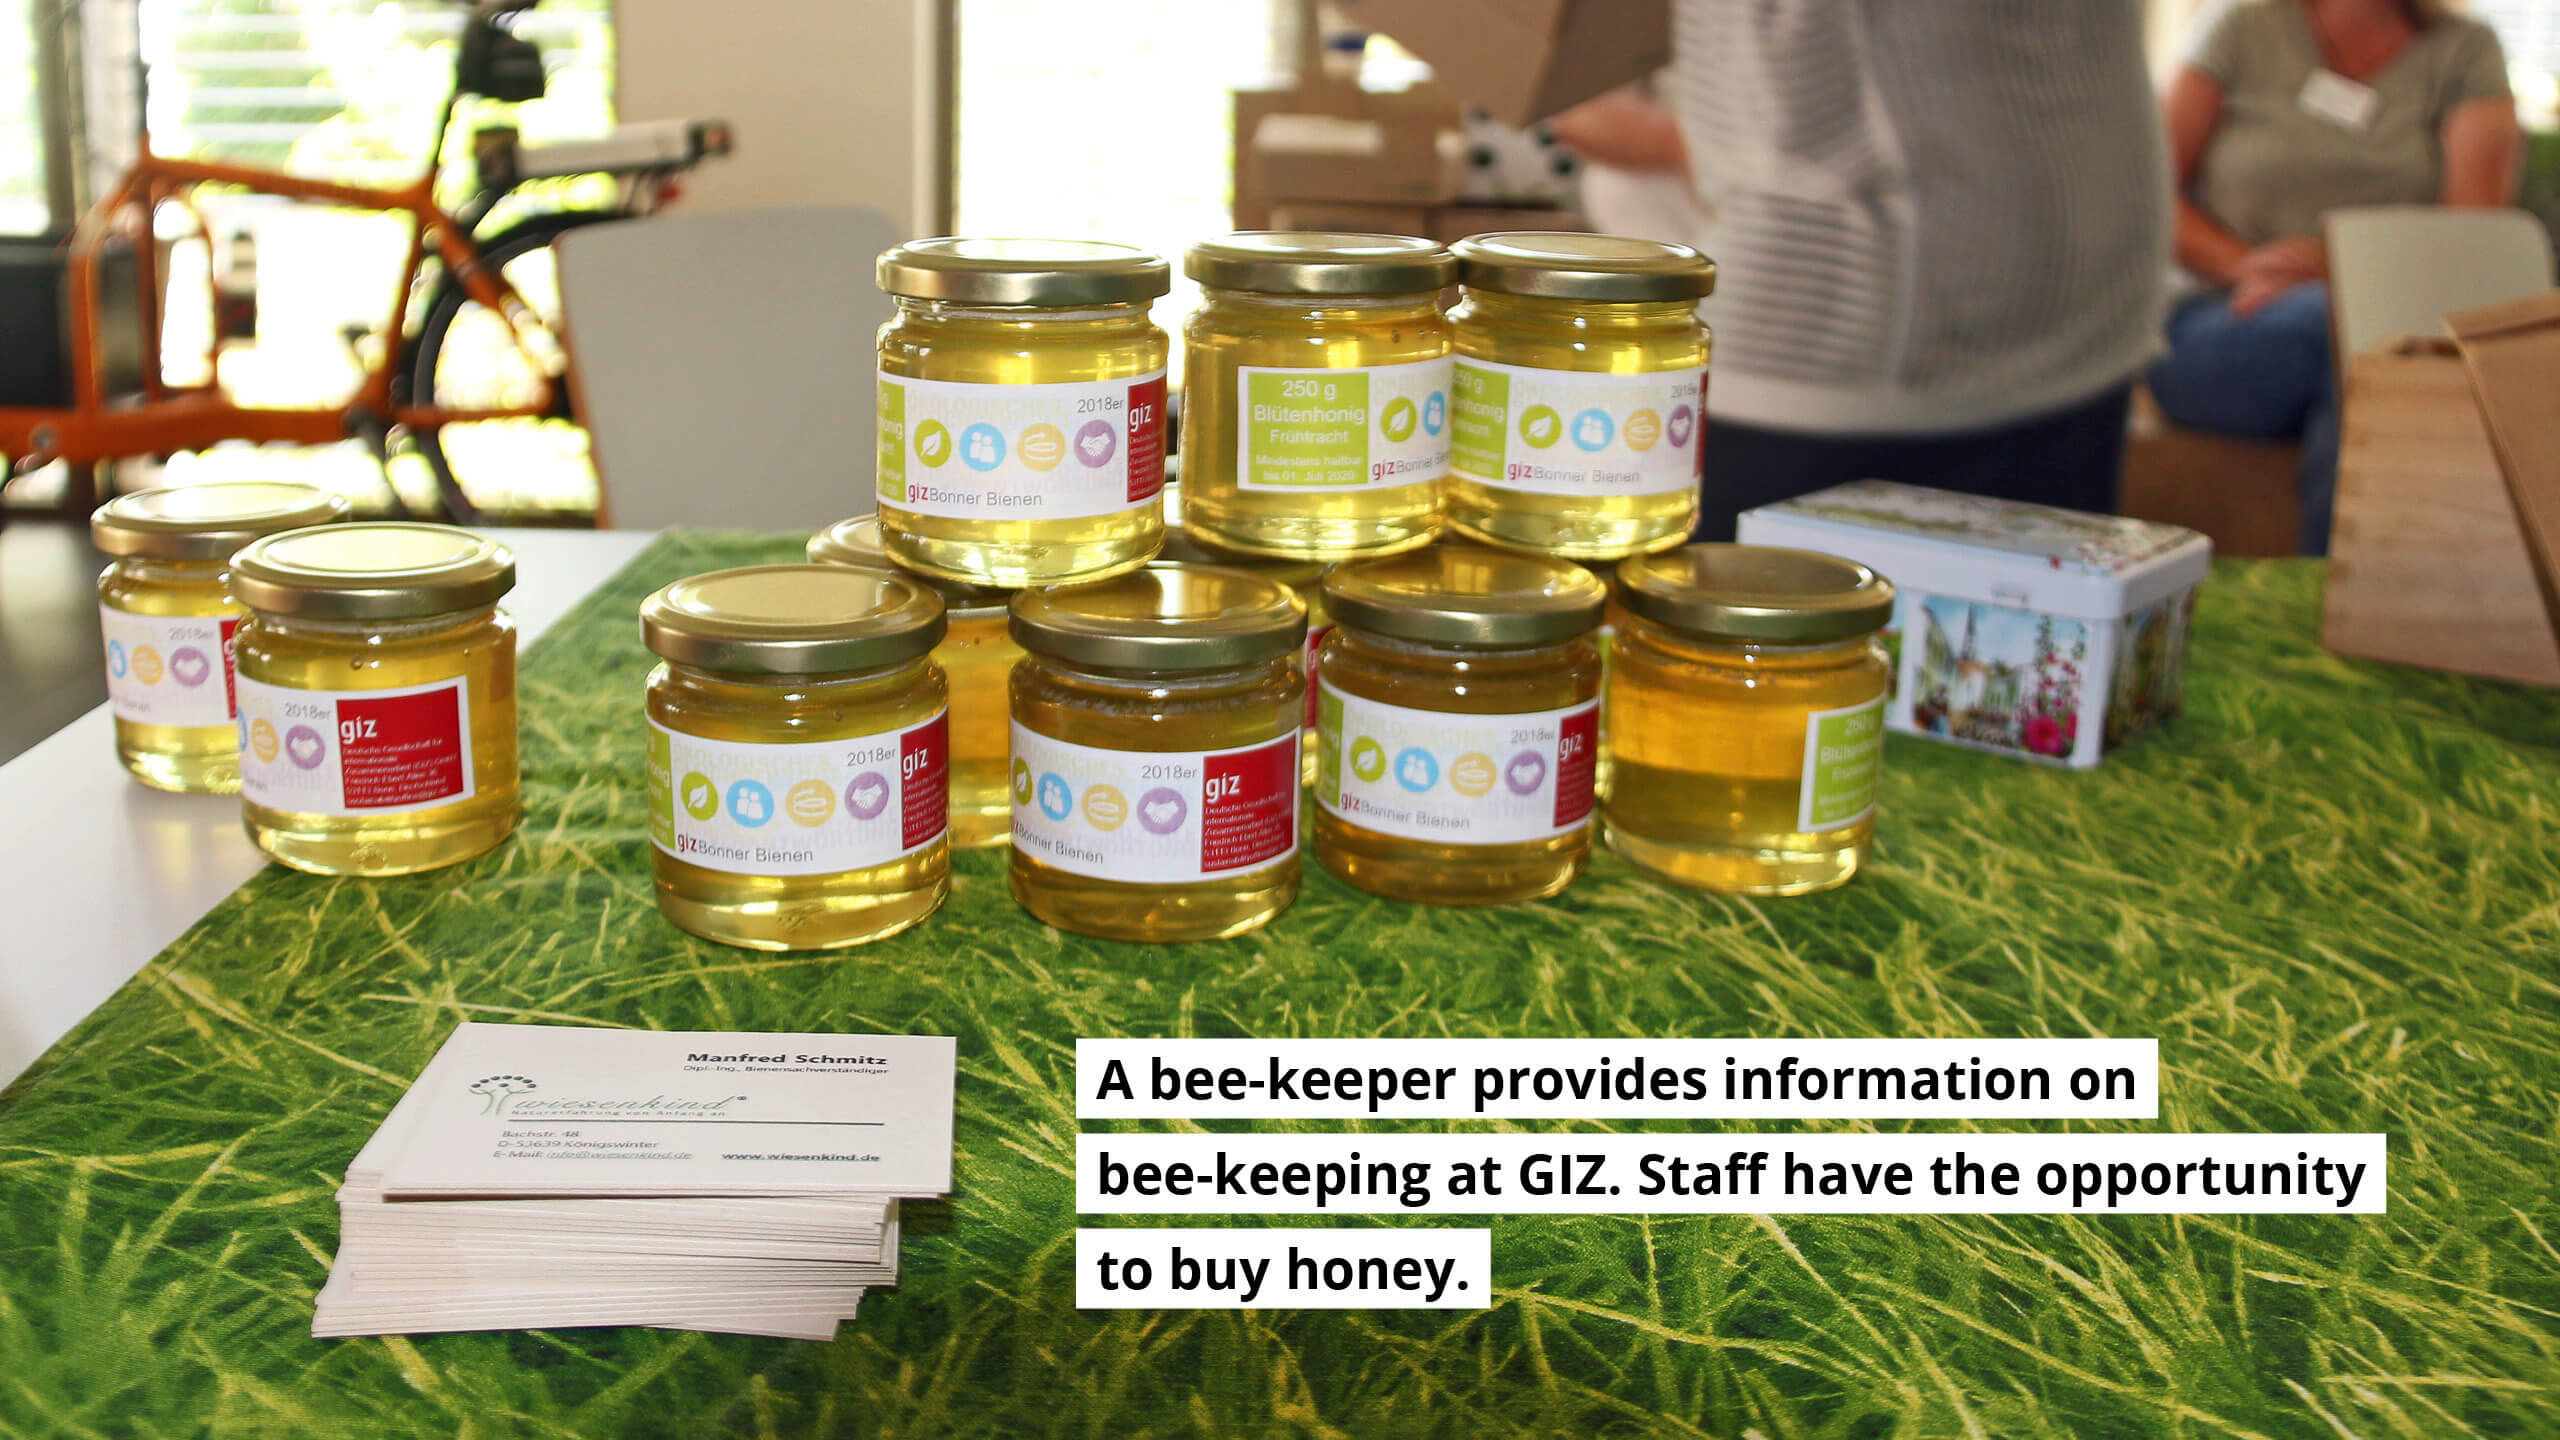 A bee-keeper provides information on bee-keeping at GIZ. Staff have the opportunity to buy honey.